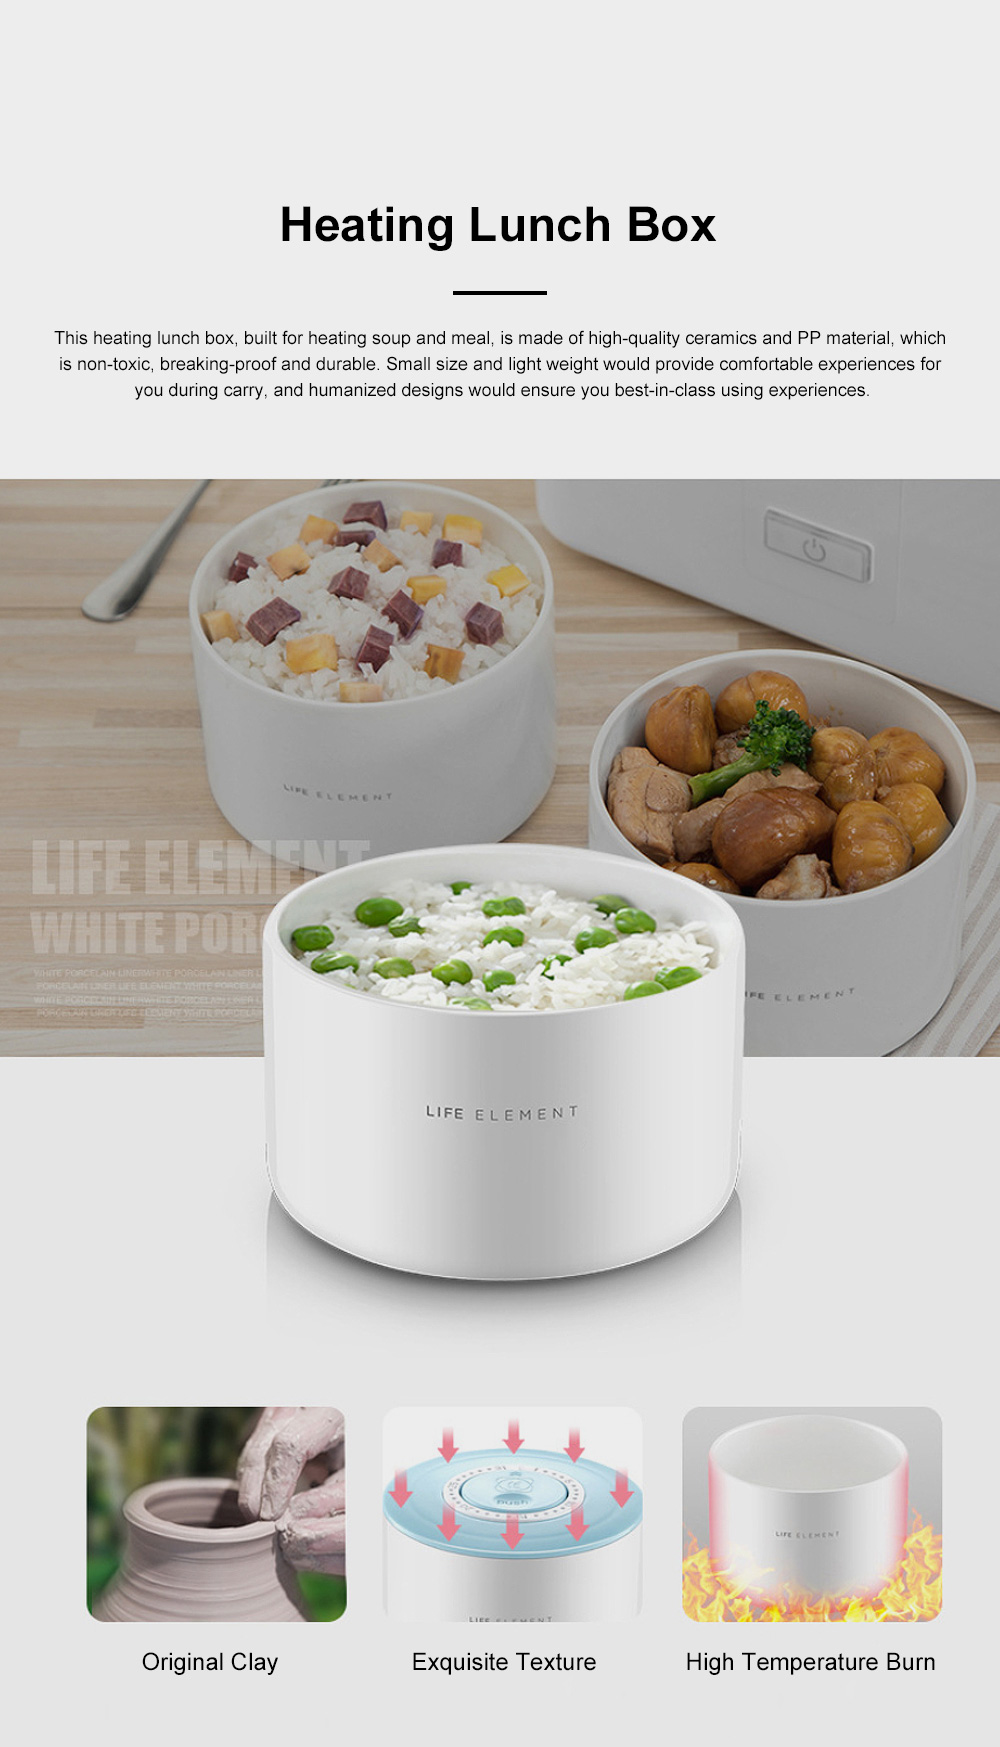 Portable Heat Preservation Electric Cooker with Double Ceramics Bowls, Delicate Food-grade PP Material Heating Lunch Box 4